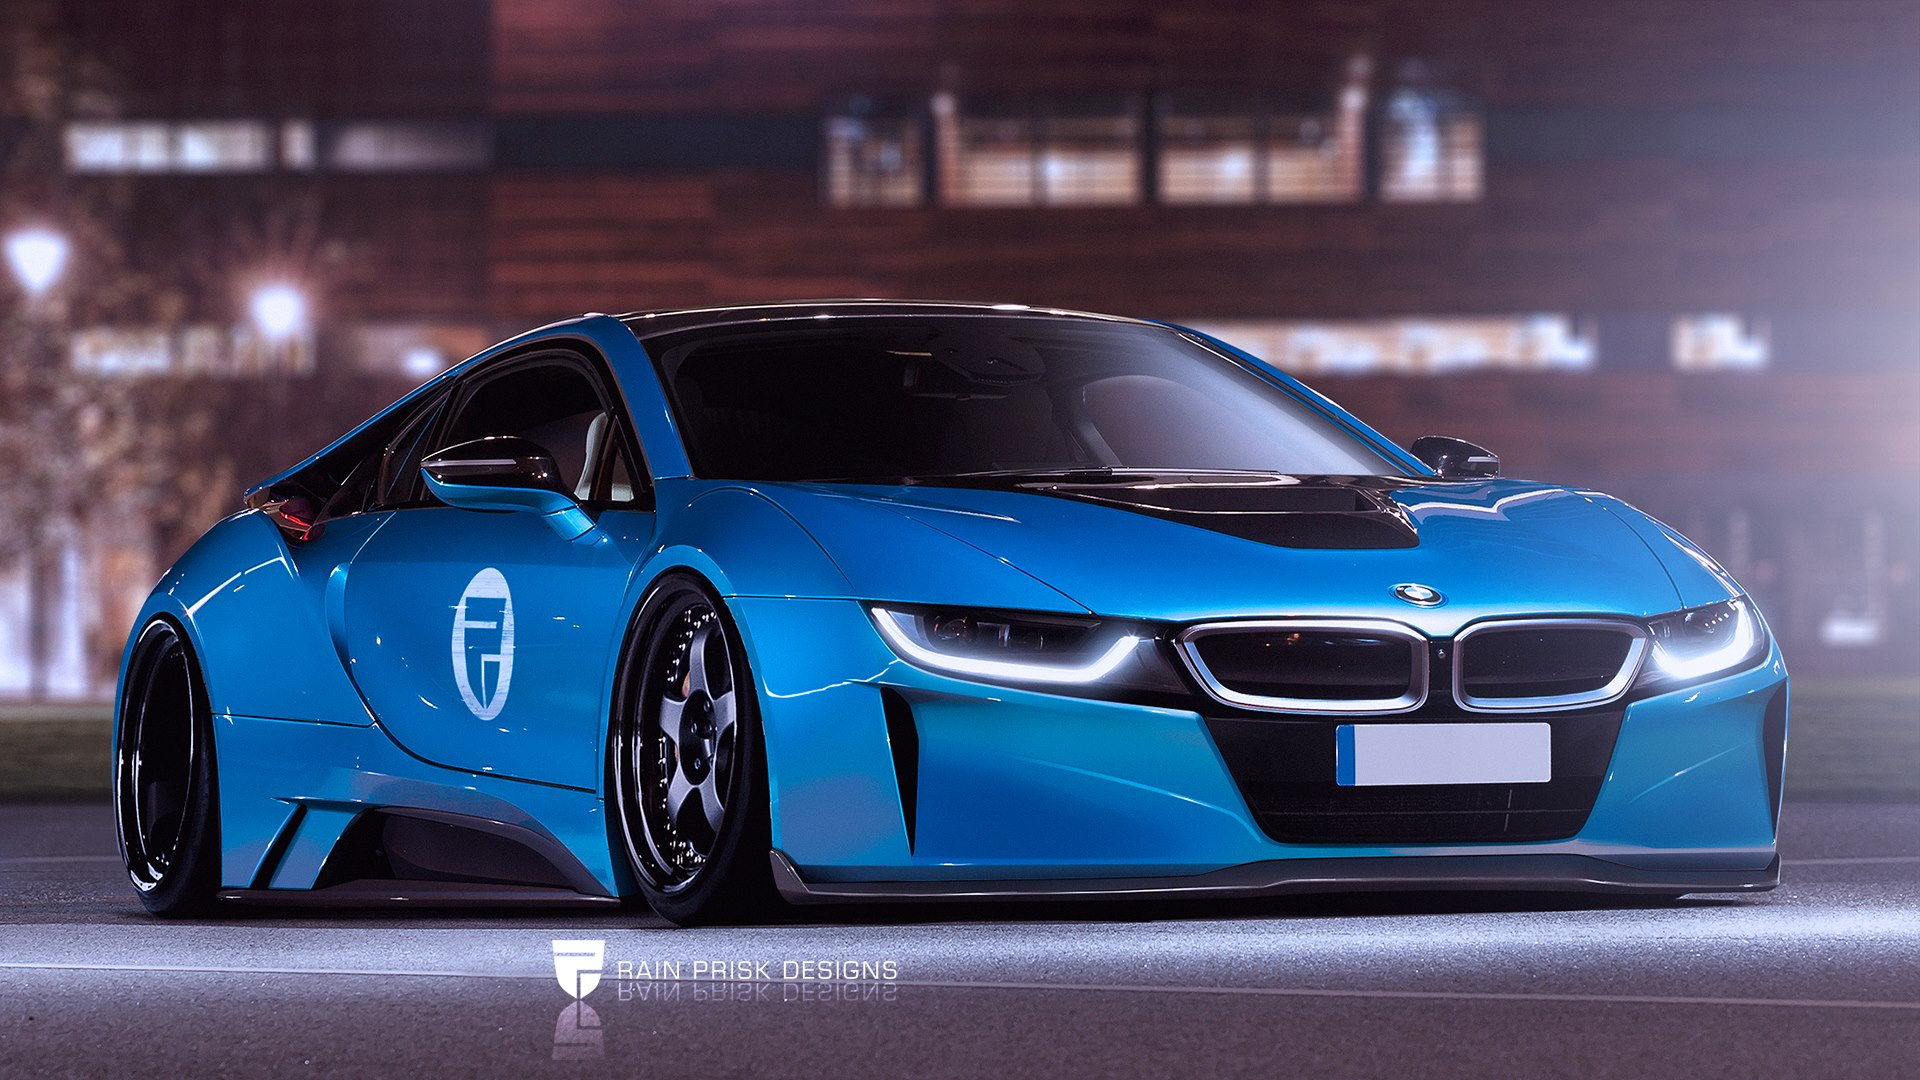 Bmw I8 Widebody Virtueller Tuning I8 Von Rain Prisk Designs